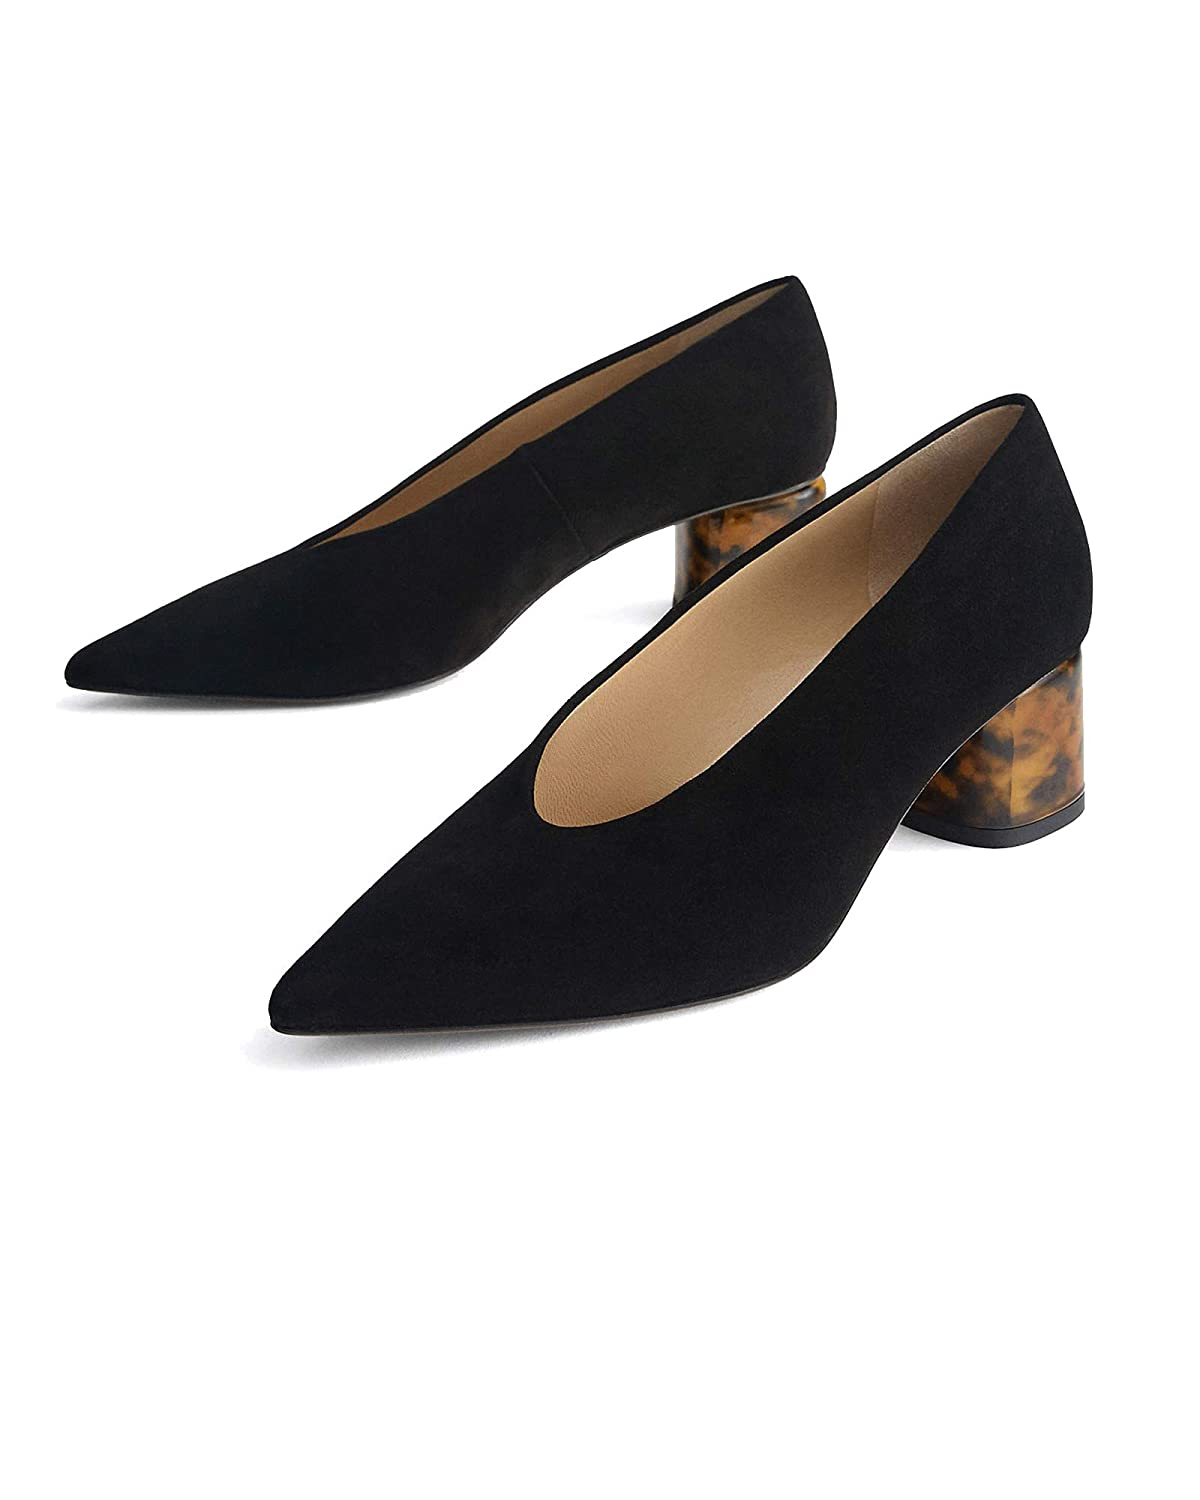 bafed8fb93a19 Uterque Women's Suede Court Shoes with Tortoiseshell Heels 4122/051 ...